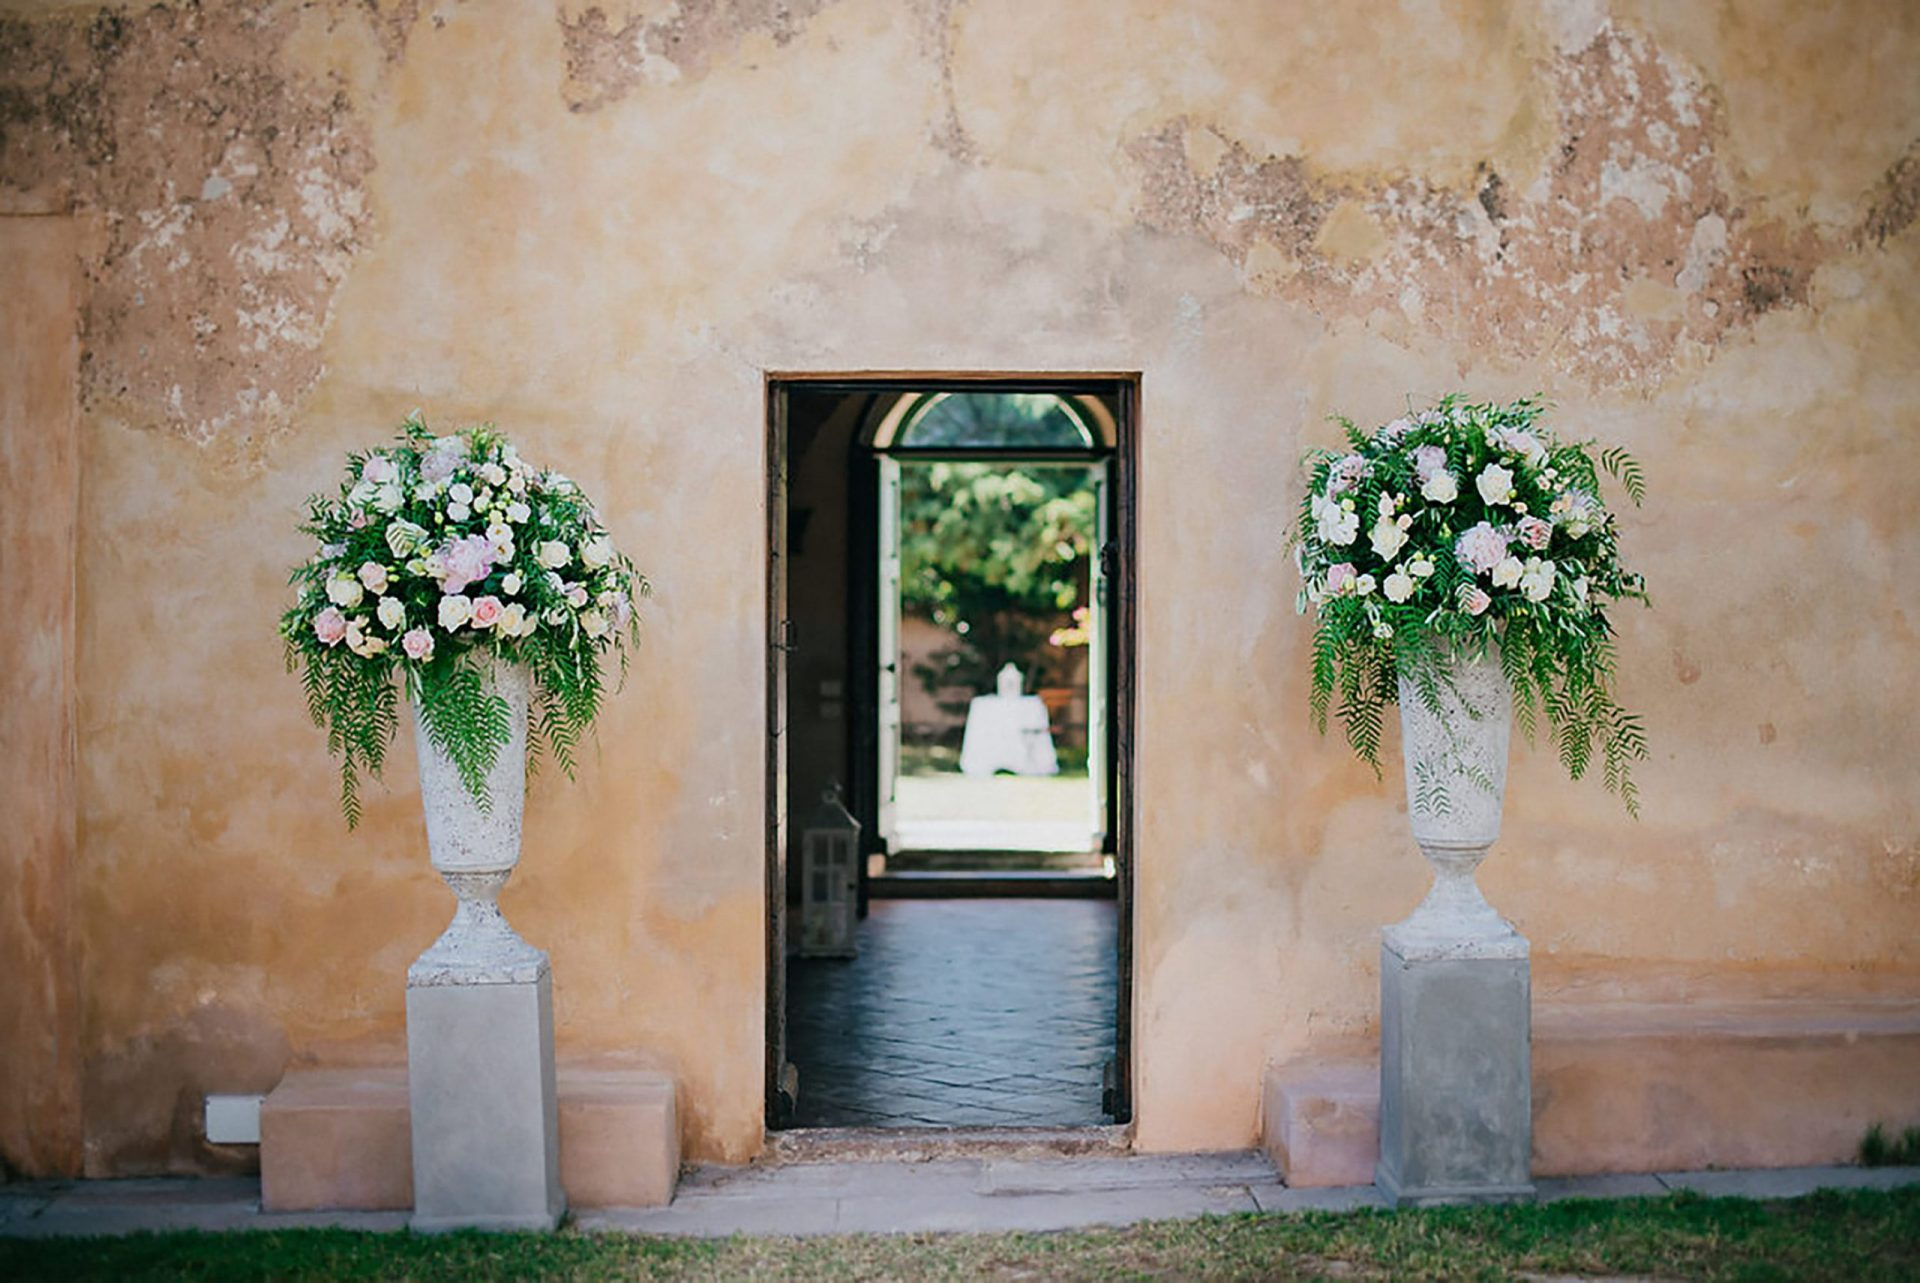 Ilaria e Giovanni, al fresco wedding, entrance flower arrangements